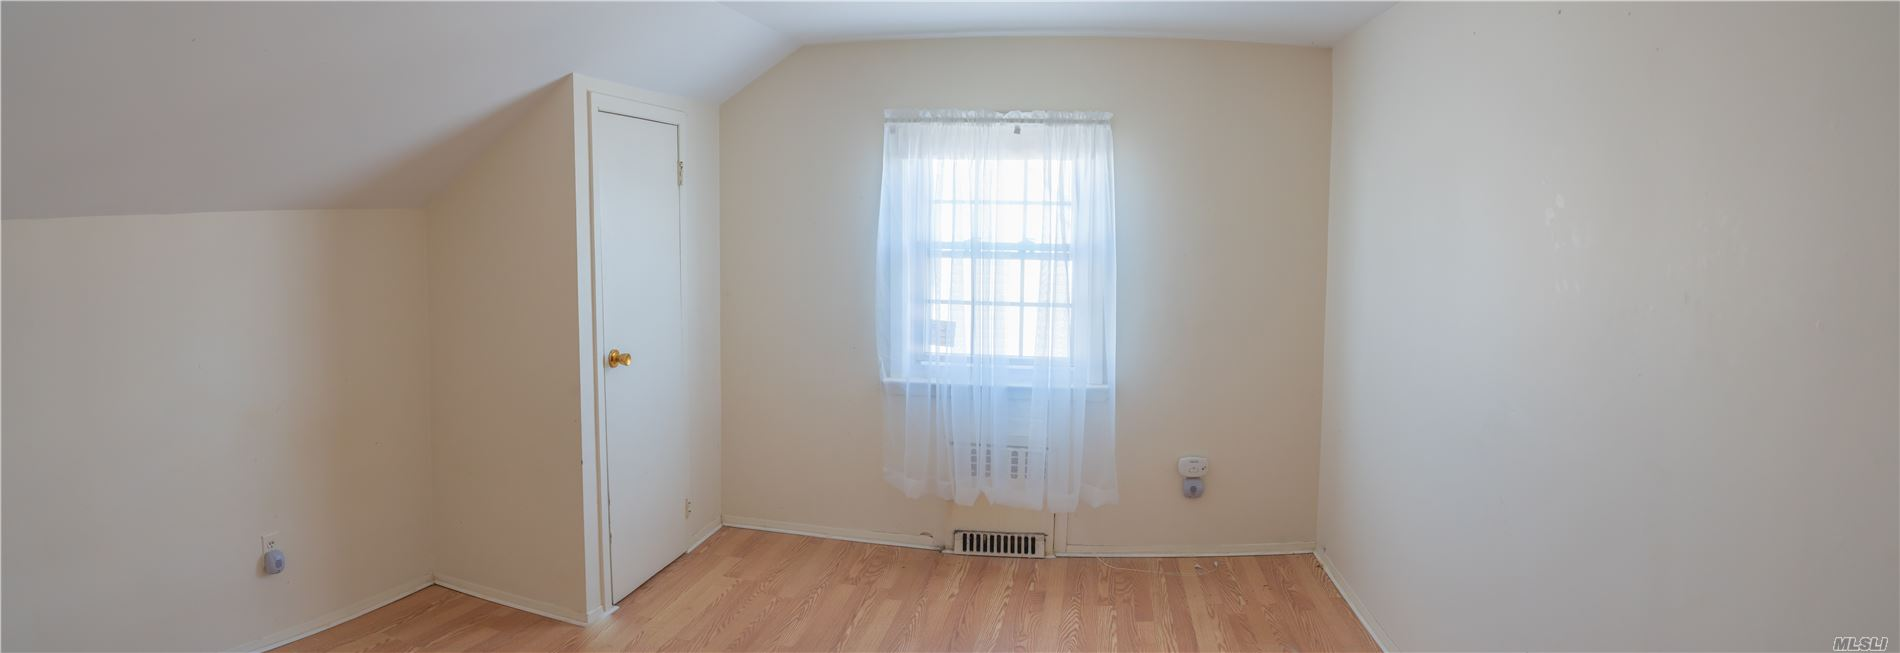 1722 Belmont Ave - photo 10